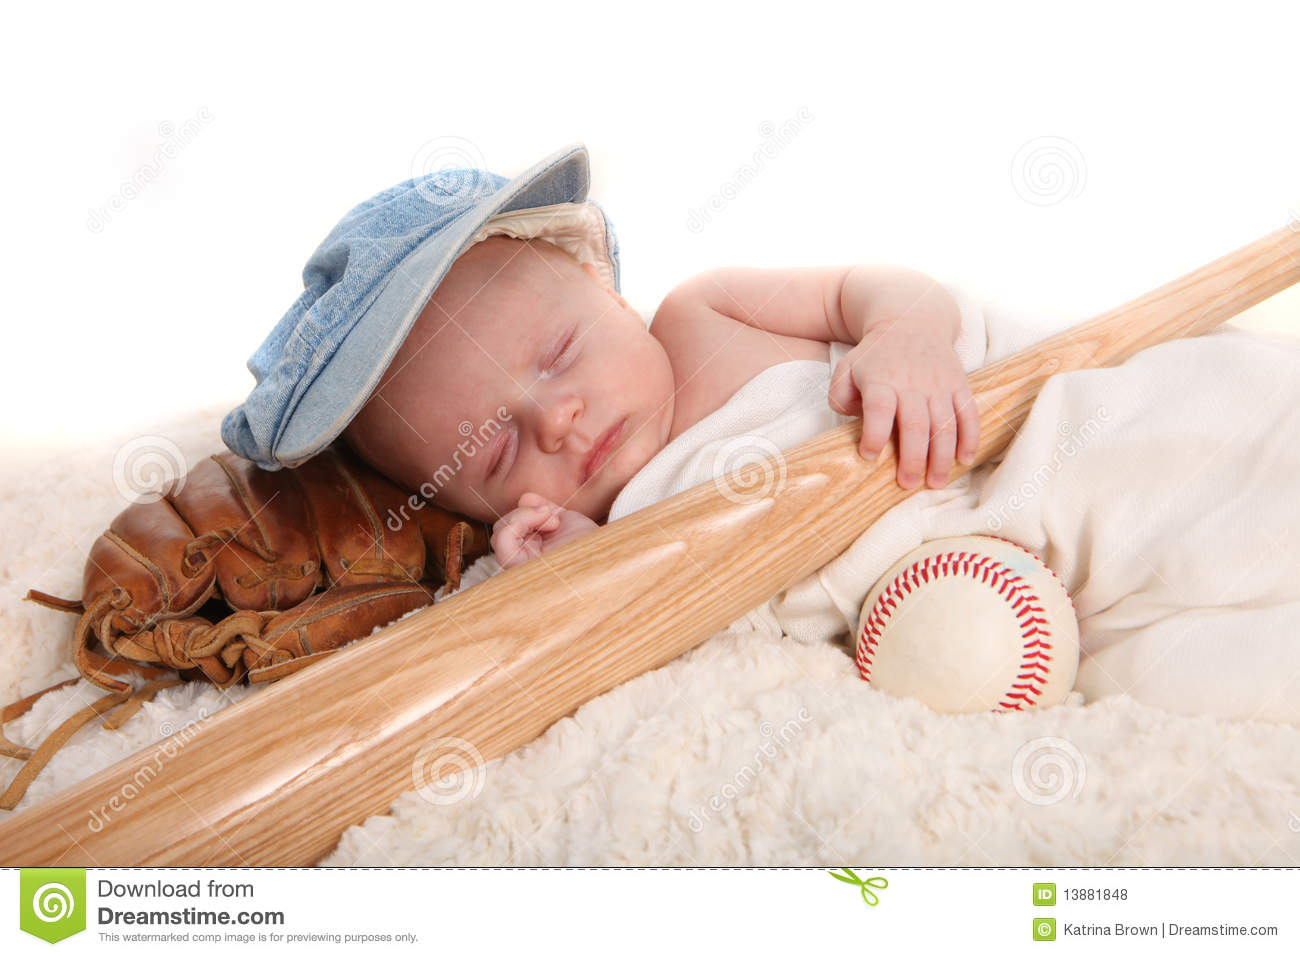 Get Baby Baseball pictures and royalty-free images from iStock. Find high-quality stock photos that you won't find anywhere else.